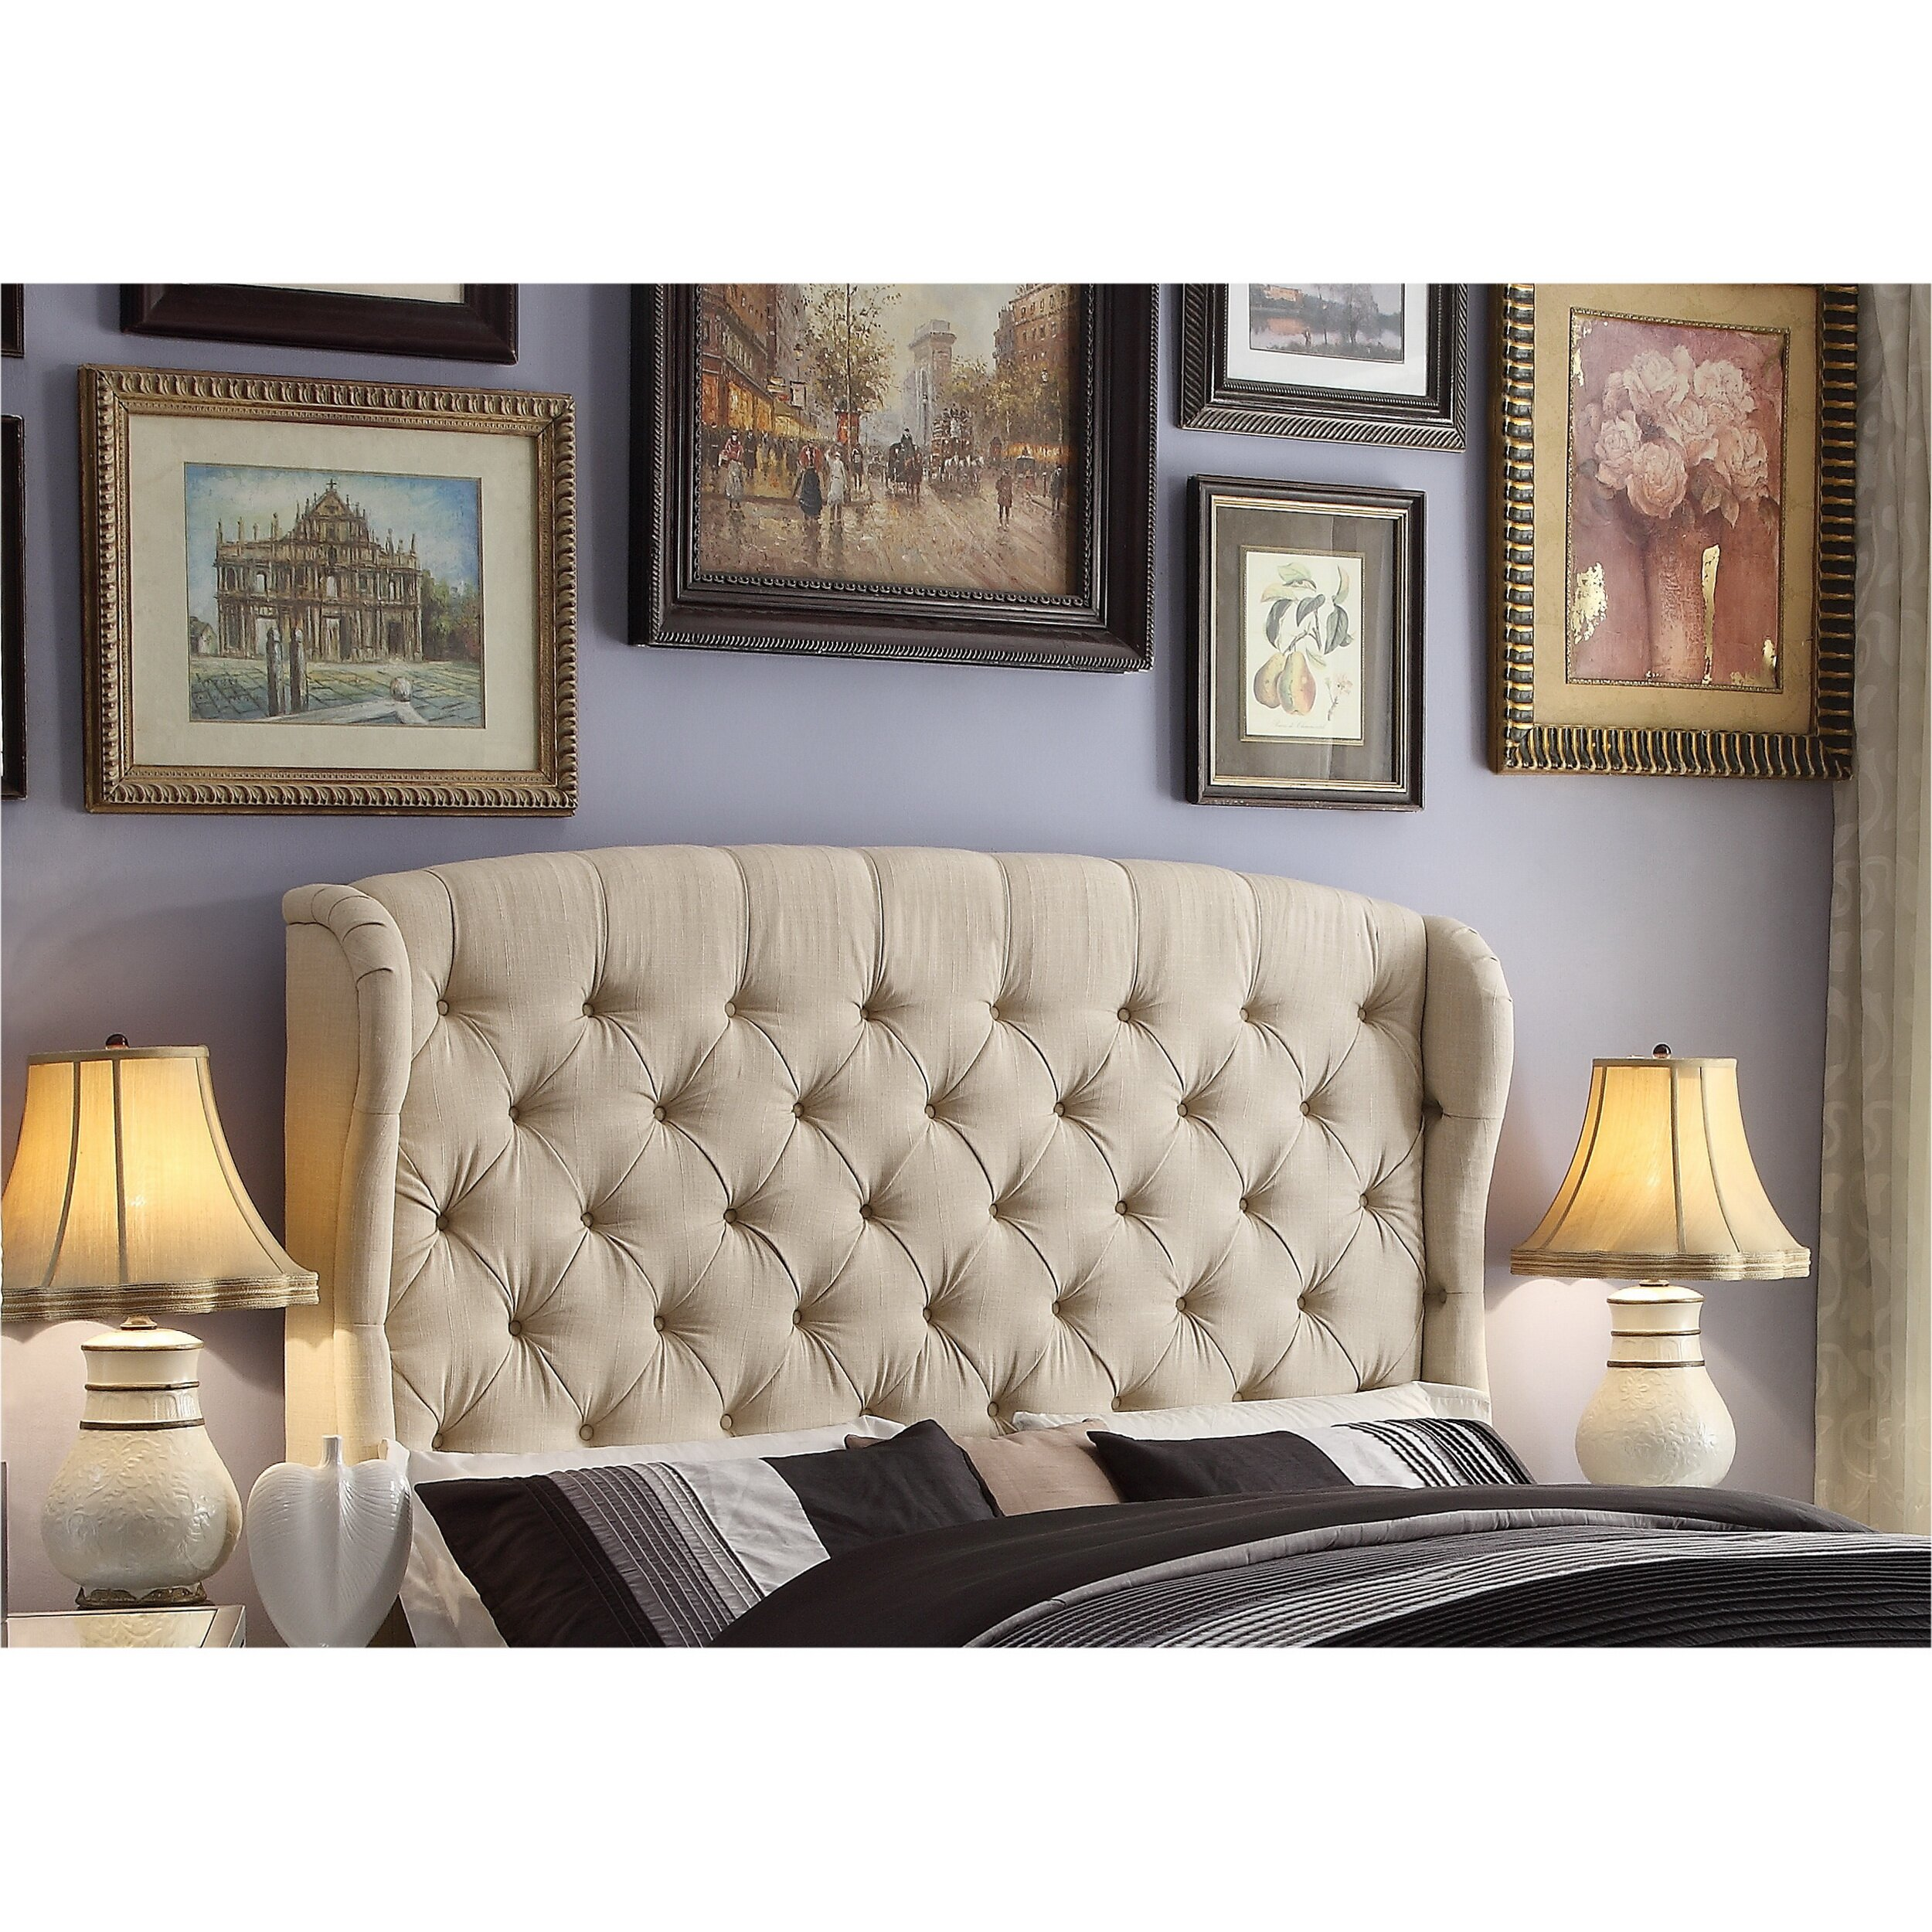 Mulhouse furniture feliciti queen upholstered headboard - Boutique free mulhouse ...